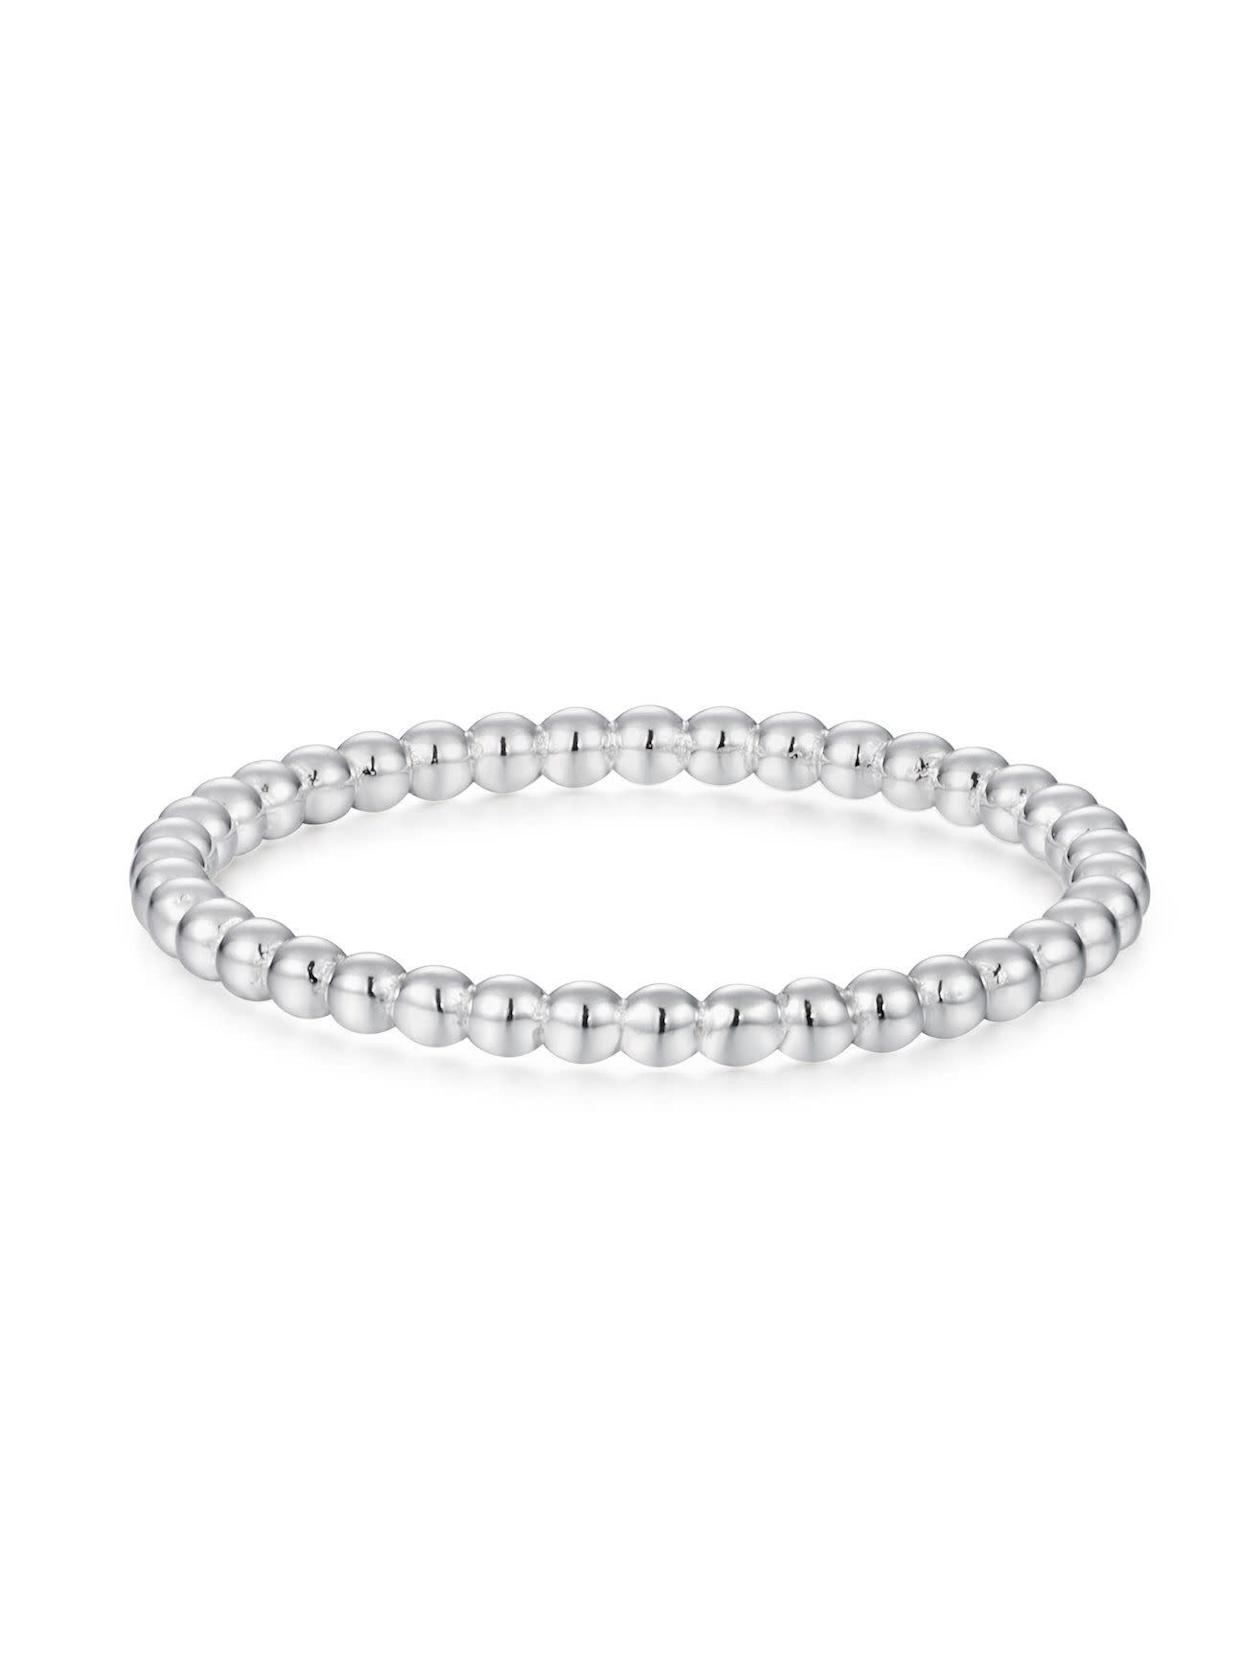 "Get the <a href=""https://shoppoirier.com/collections/rings/products/silver-beaded-band"" rel=""nofollow noopener"" target=""_blank"" data-ylk=""slk:Poirier silver beaded band, available in sizes 7-13, for $42"" class=""link rapid-noclick-resp"">Poirier silver beaded band, available in sizes 7-13, for $42</a>"